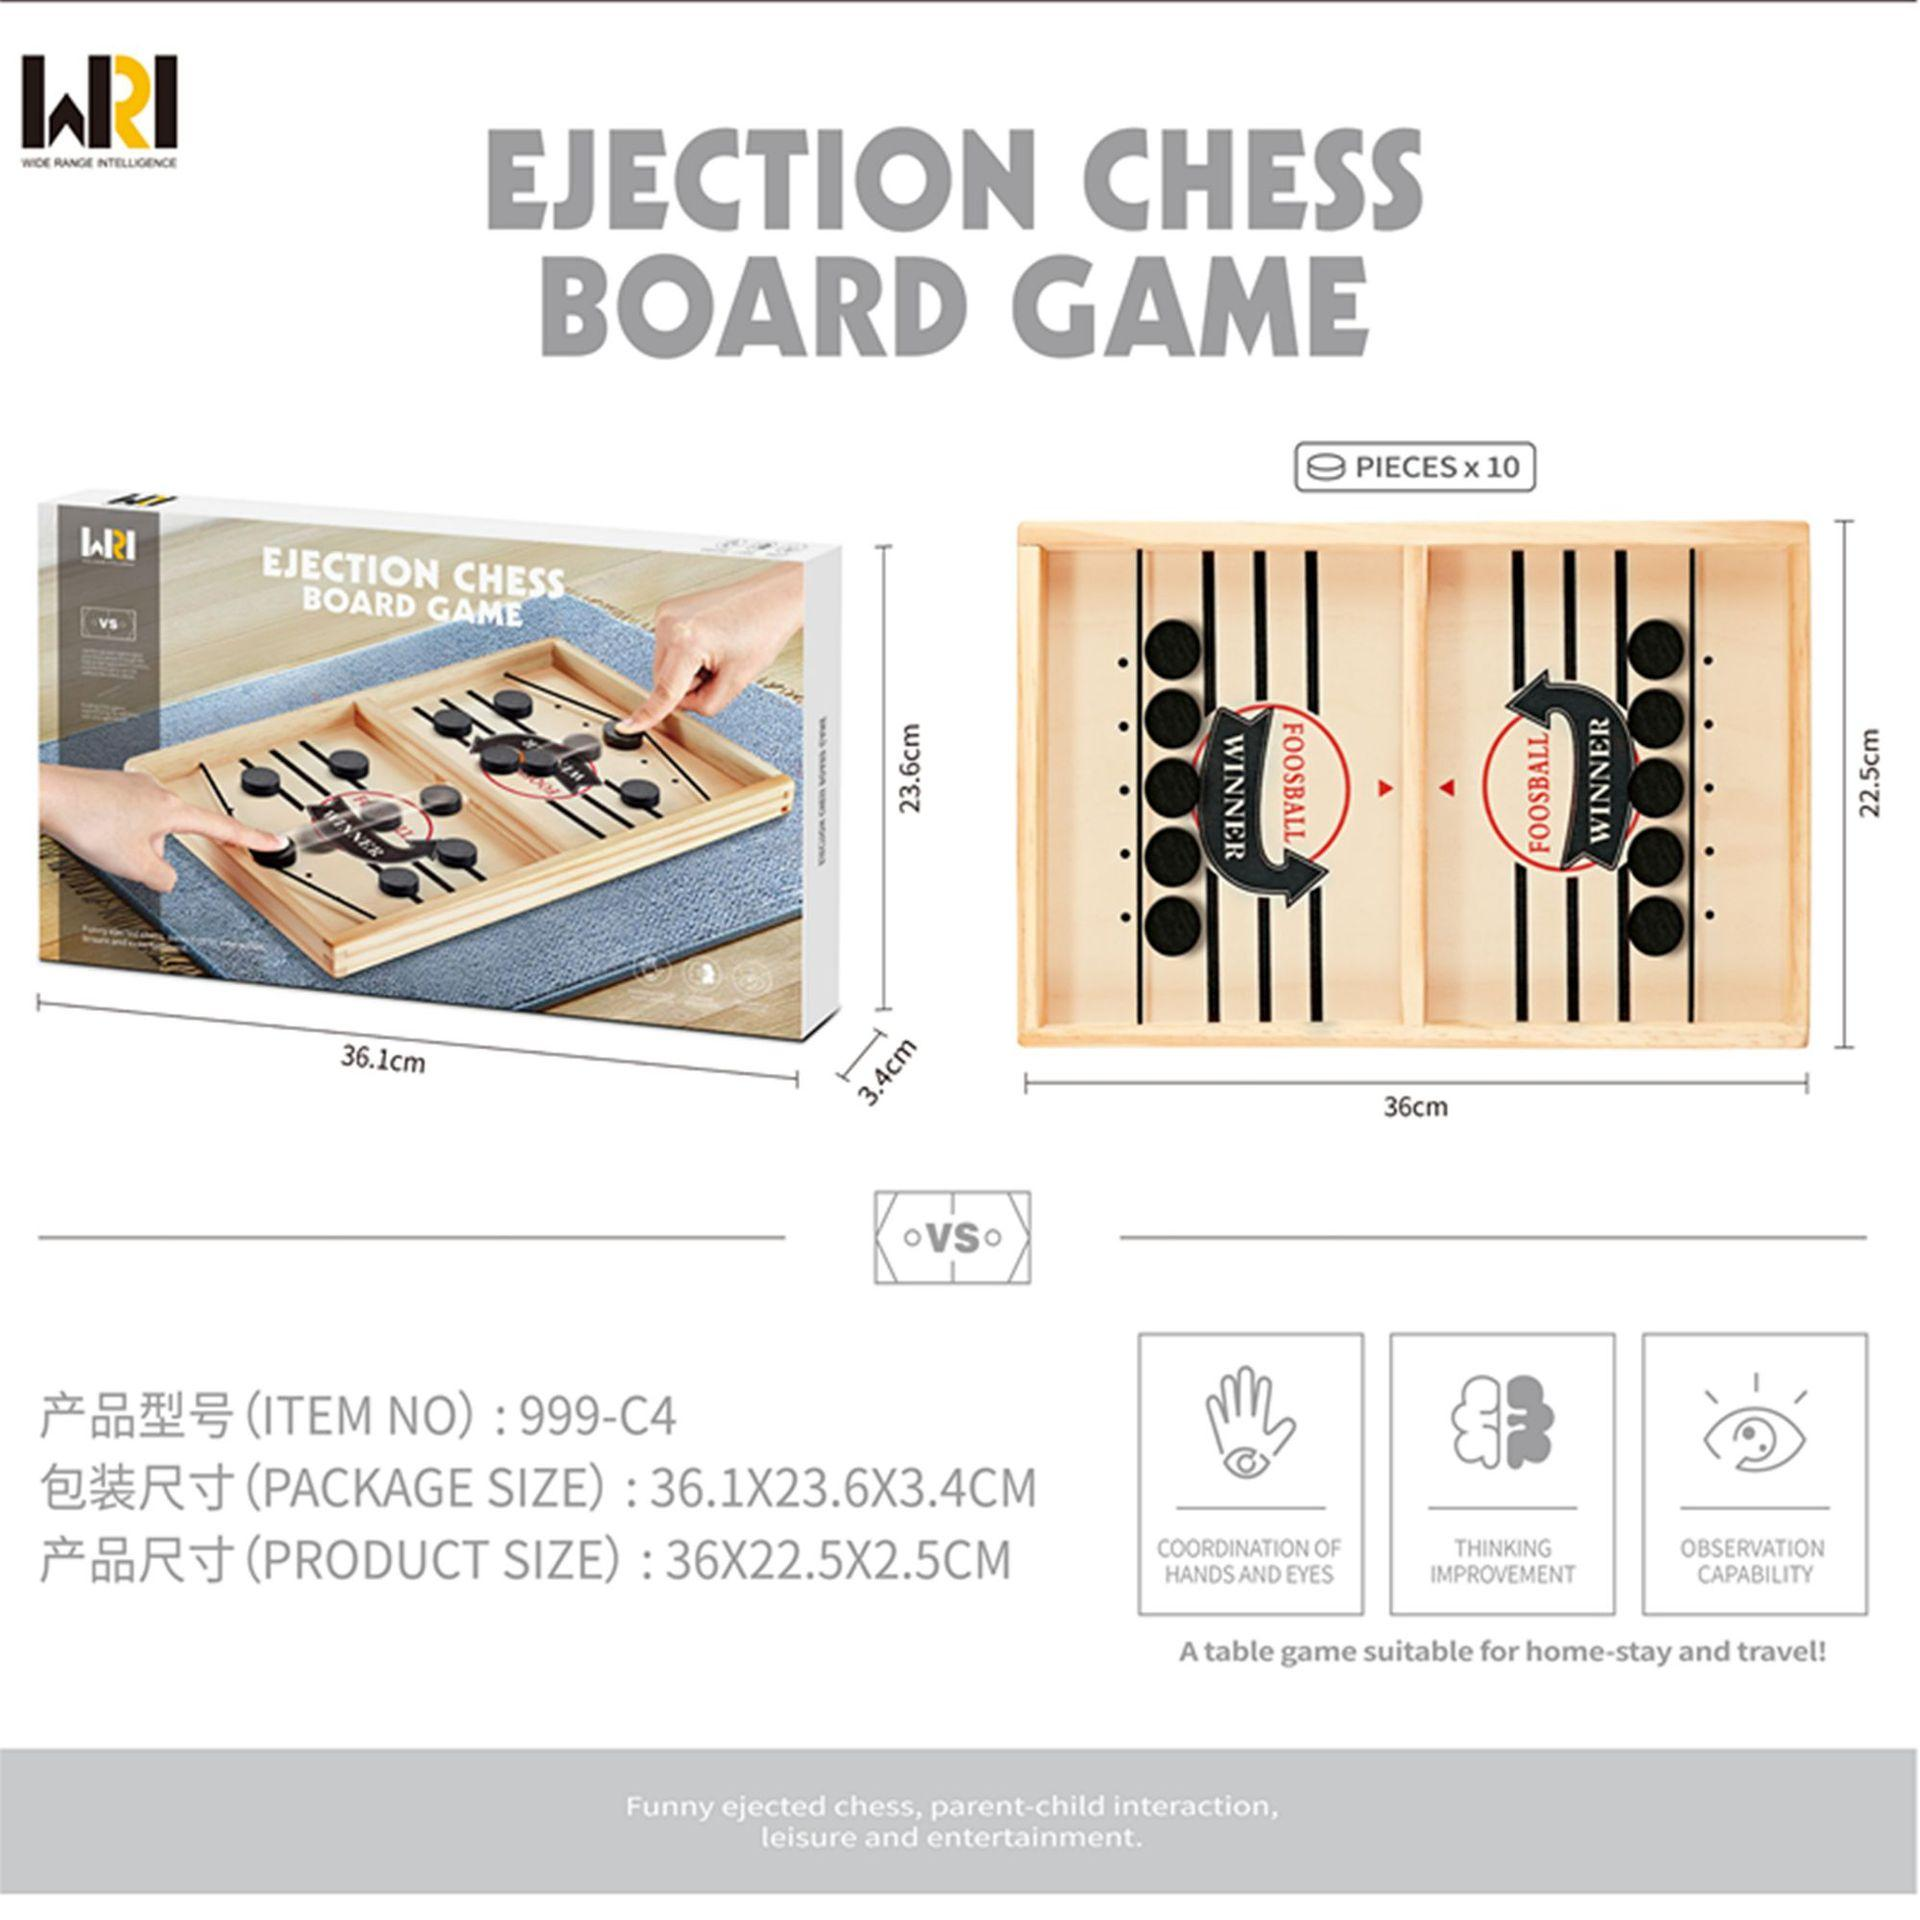 New product Foosball Games Super Winner Sling Puck Game Board-Game table desktop battle 2 in 1 ice hockey game Toys For Adult Child